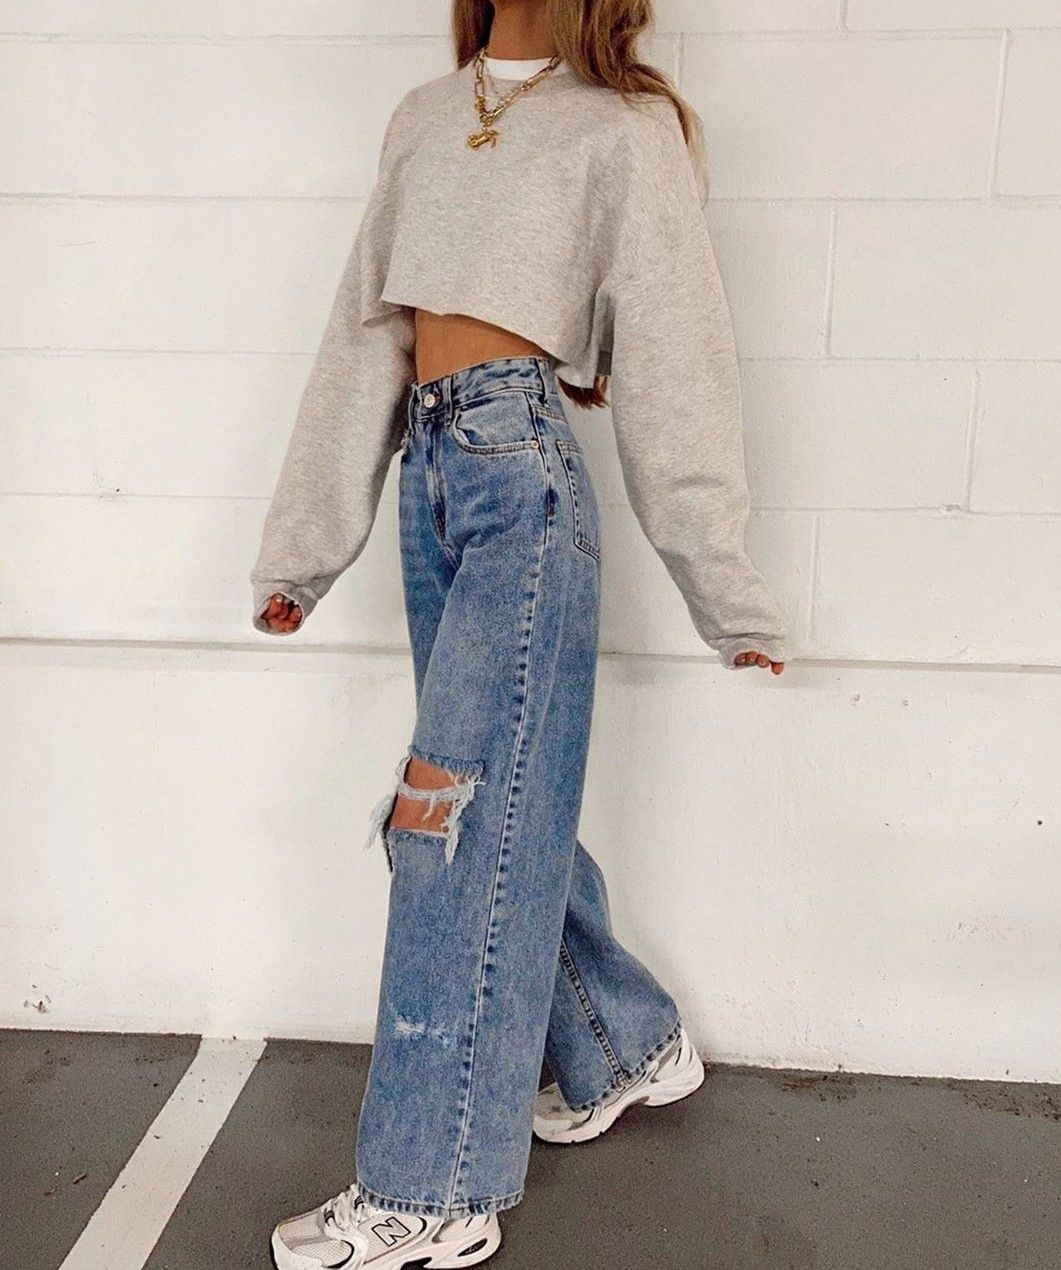 Pinterest Brooklynzeta In 2020 Cute Outfits Clothes Fashion Inspo Outfits